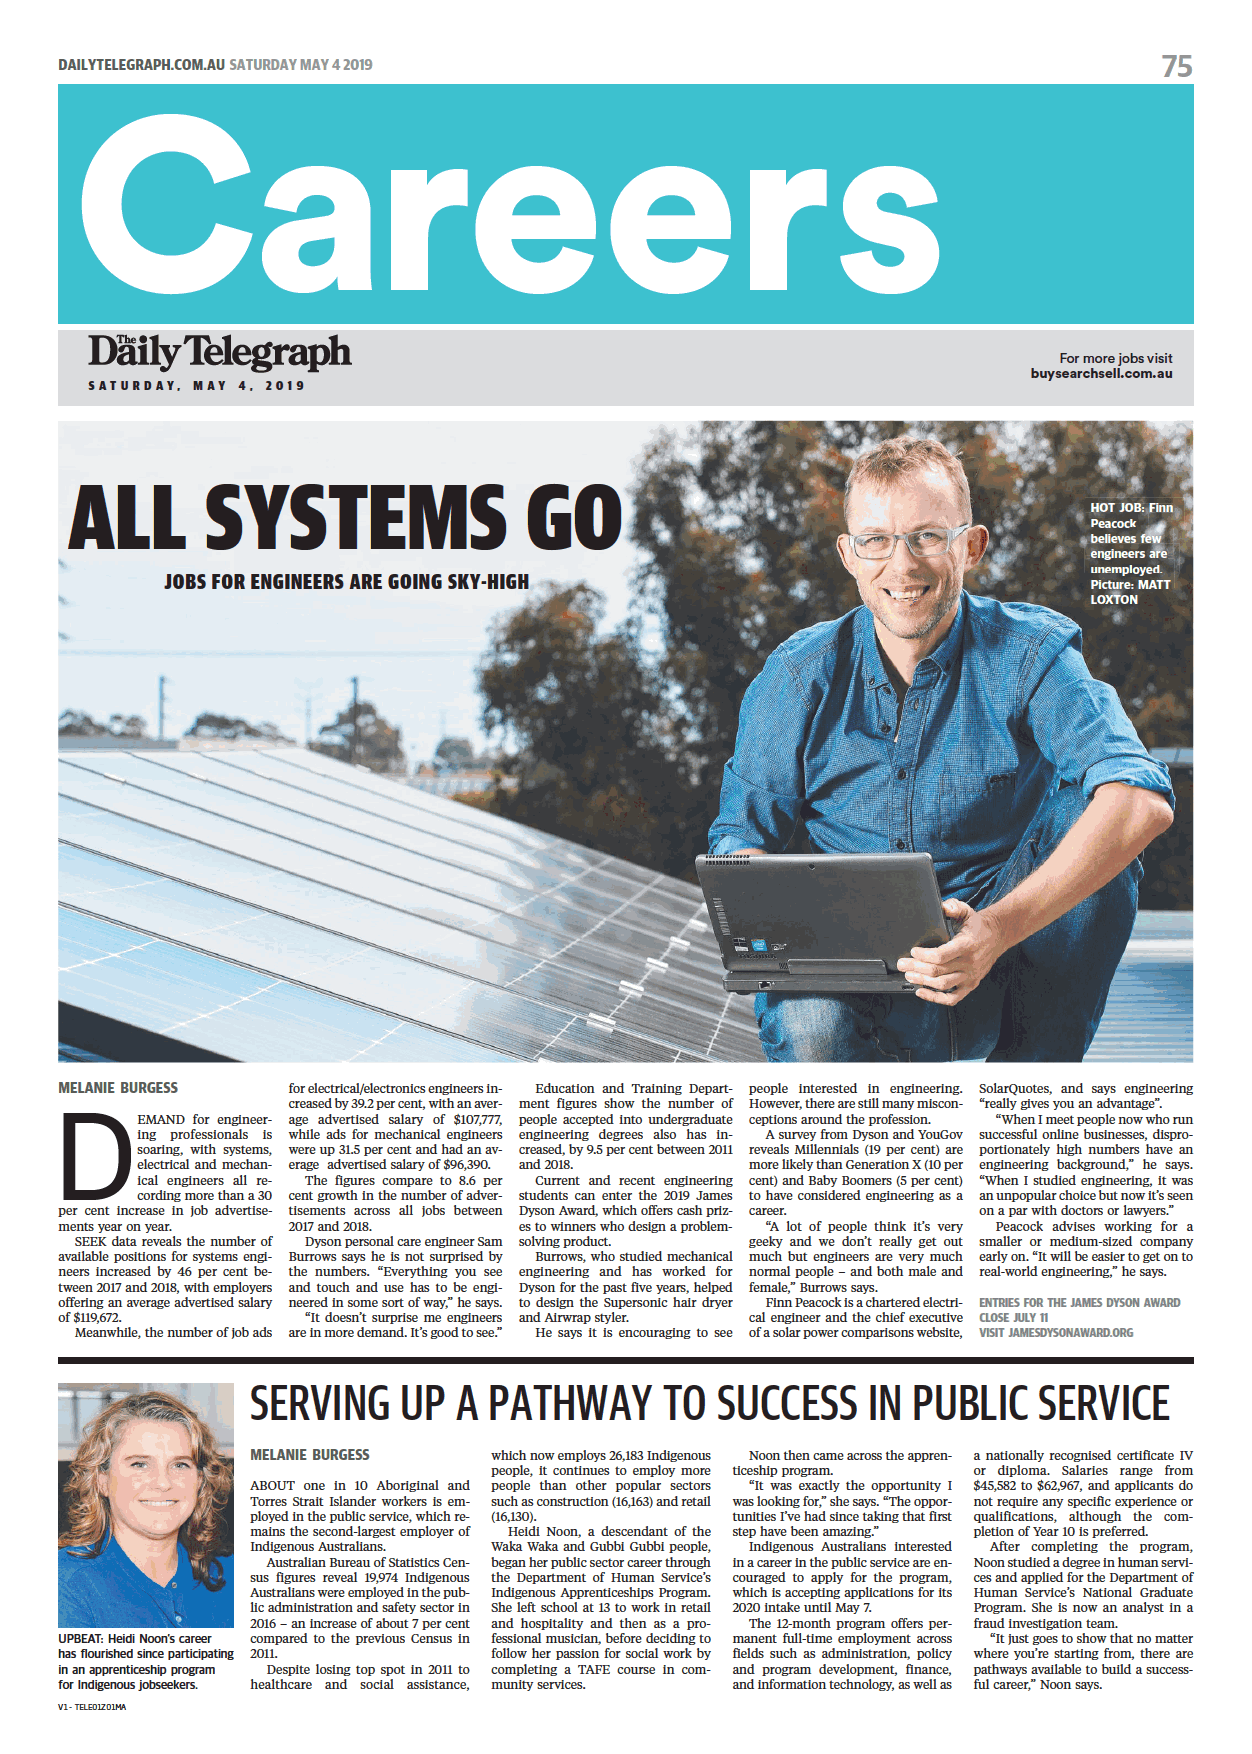 SolarQuotes - The Daily Telegraph (Careers Cover).png